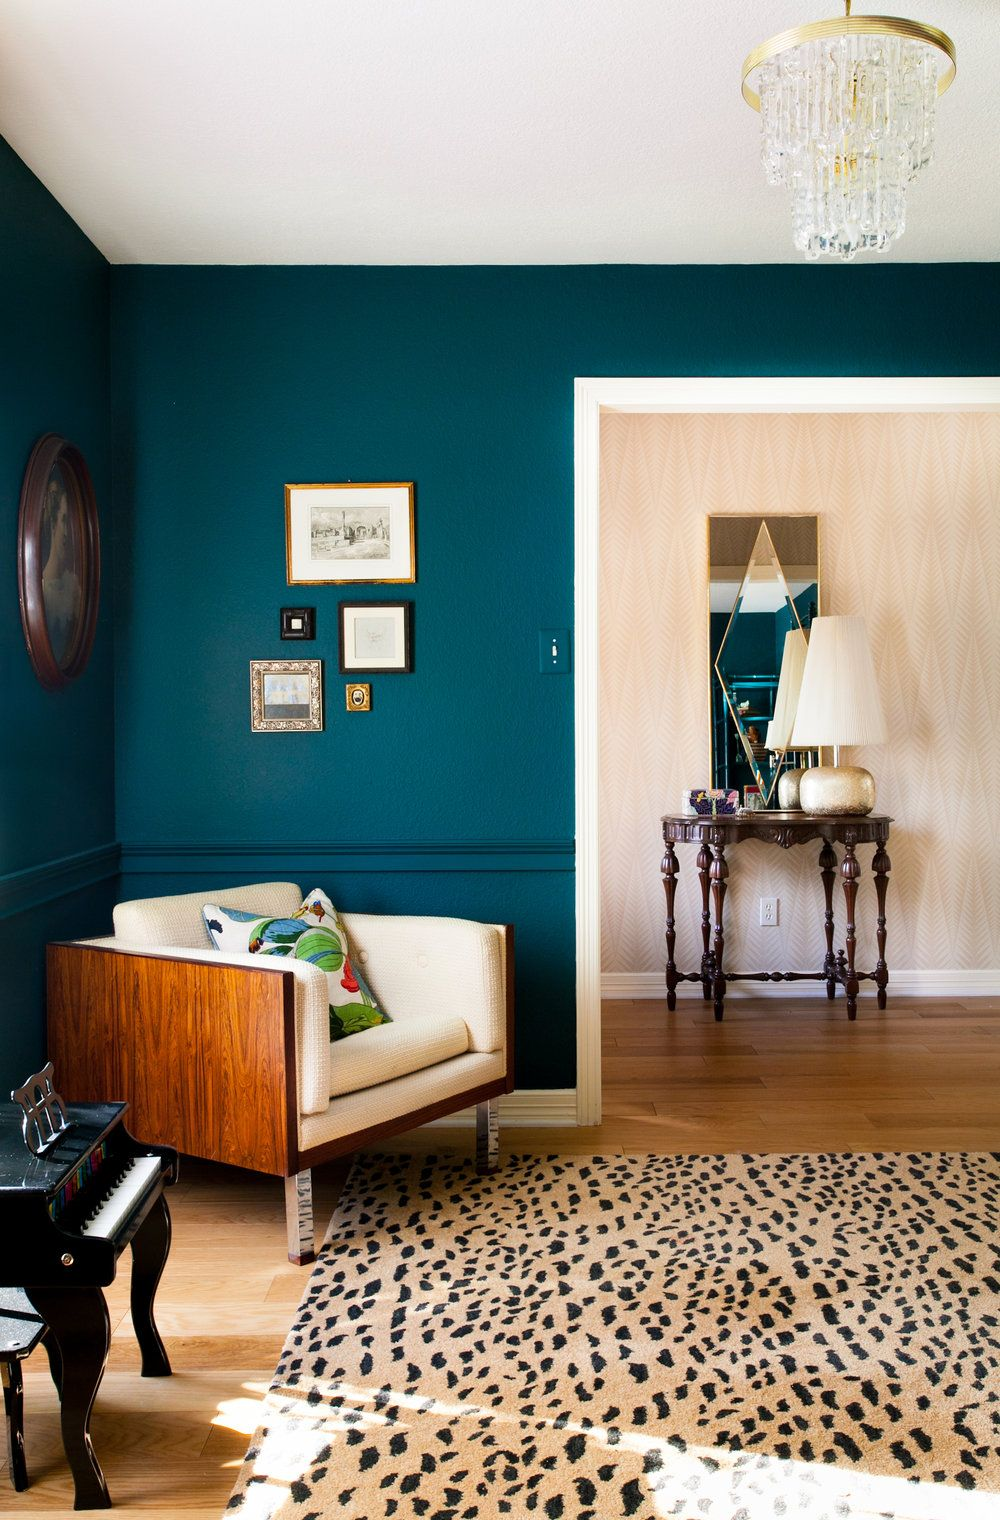 How To Decorate With Jewel Tones Teal Living Room Decor Home